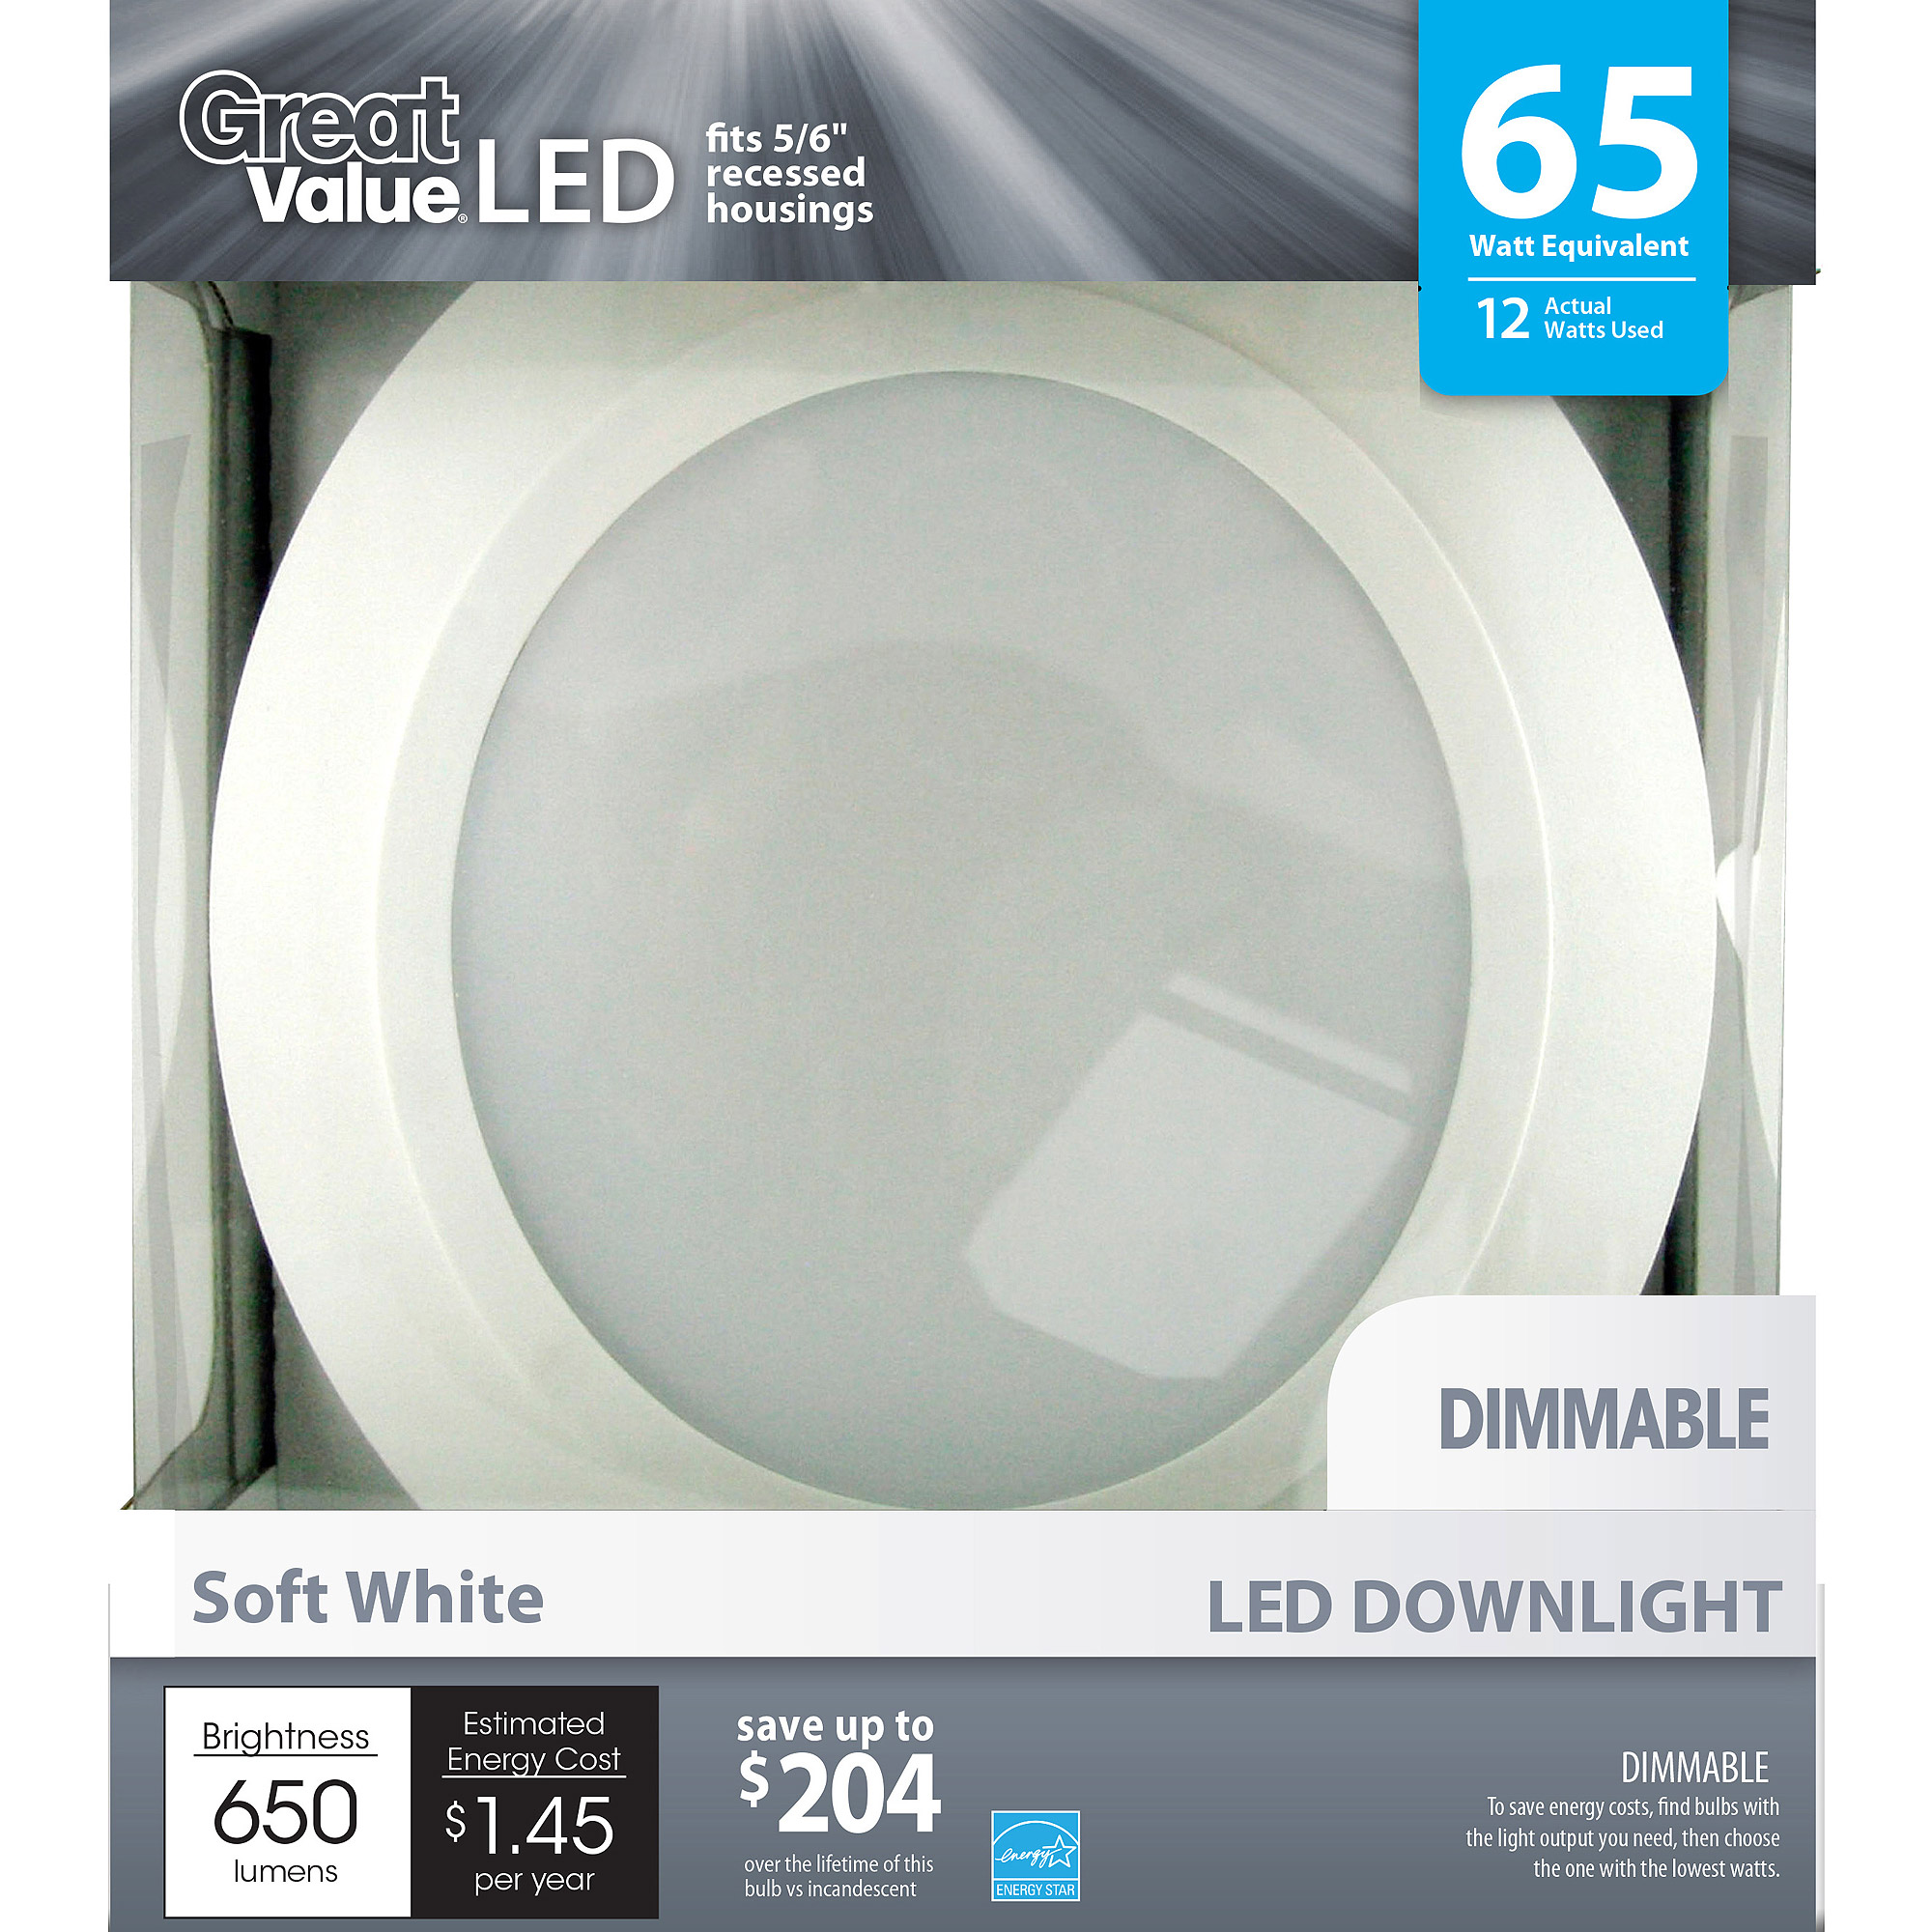 Great Value LED Light Bulb 12W (65W Equivalent) Downlight (E26) Dimmable, Soft White